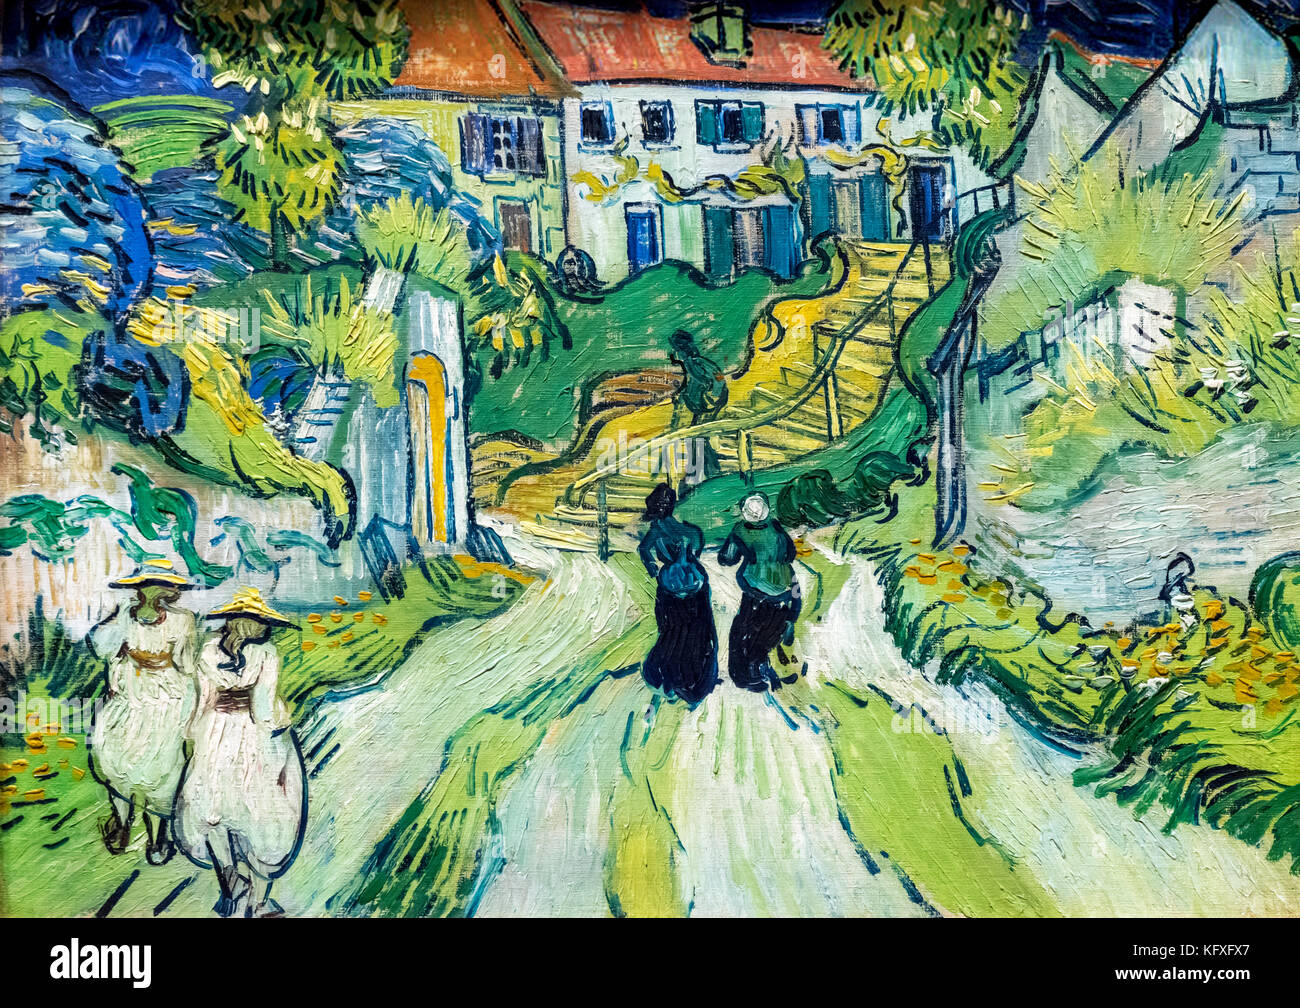 Stairway at Auvers by Vincent van Gogh (1853-1890), oil on canvas, 1890 - Stock Image